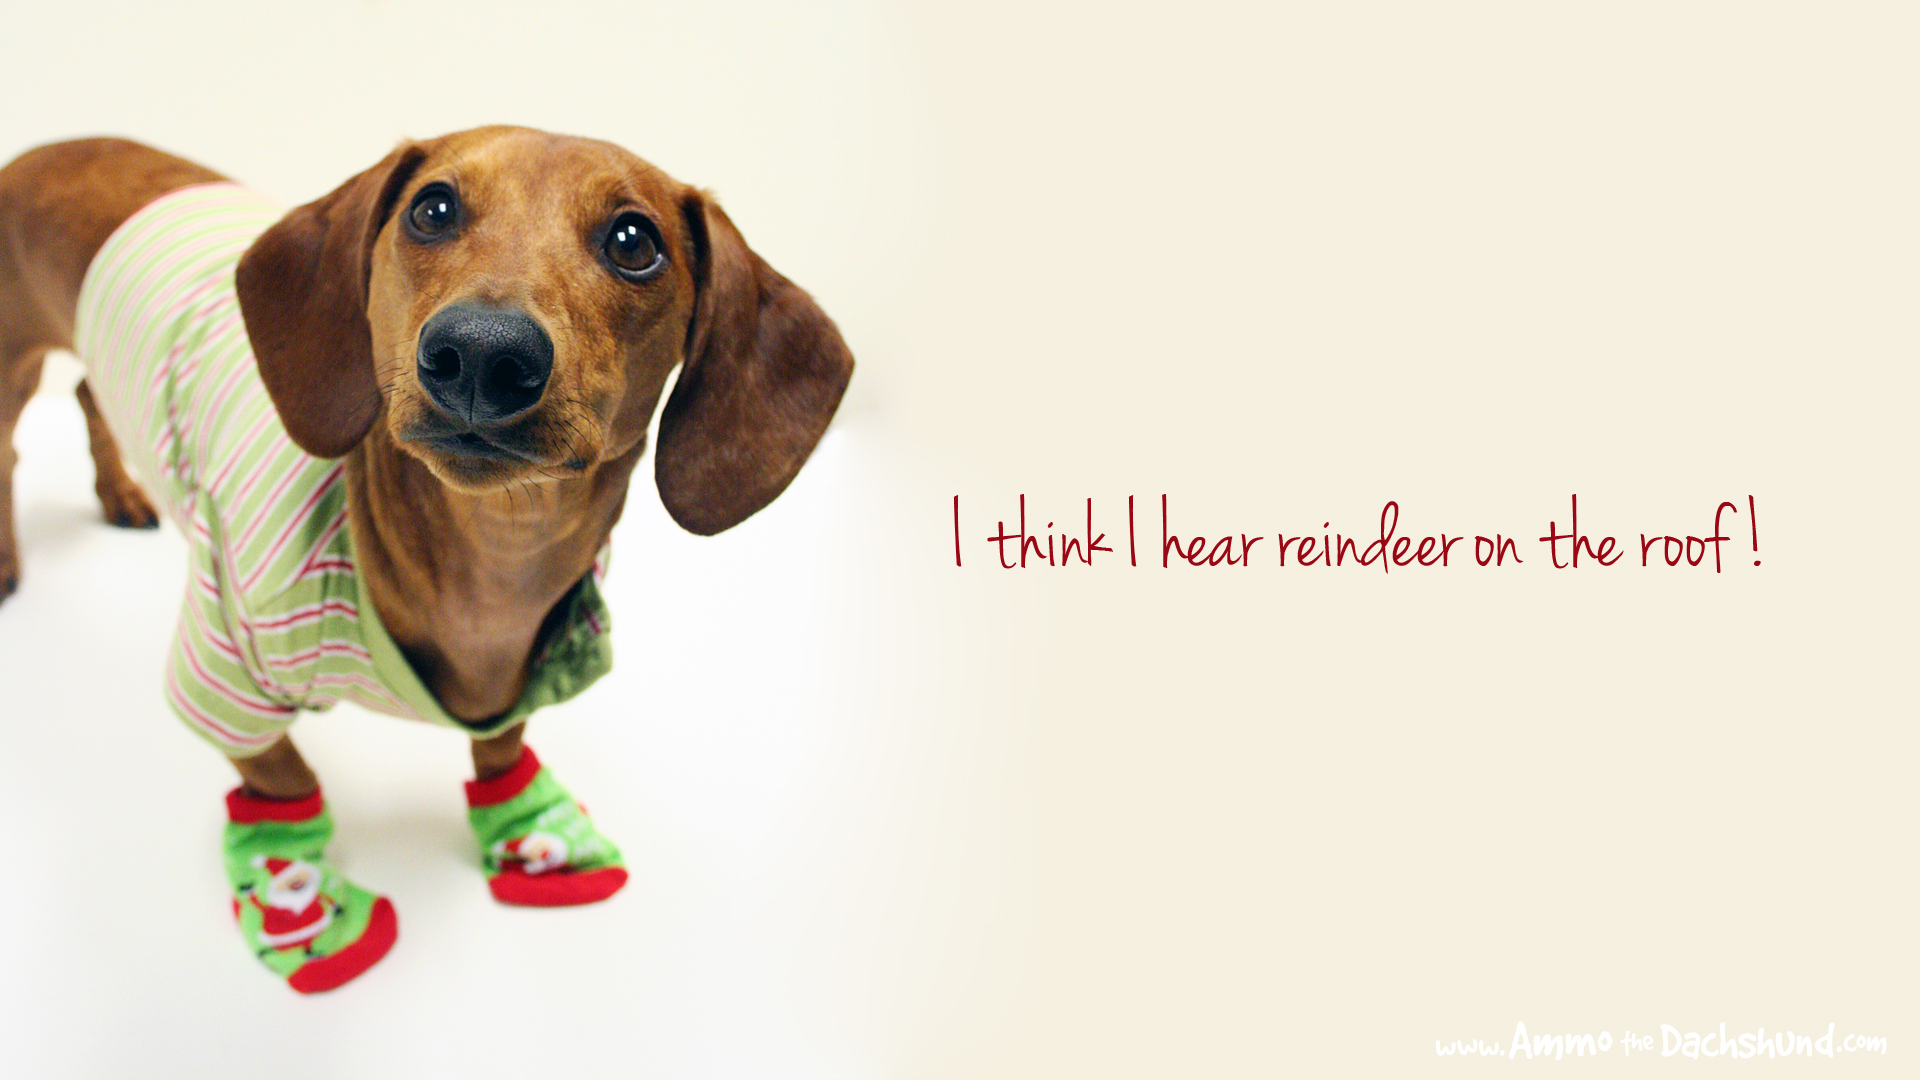 12 days of cheer! free holiday desktop wallpaper | ammo the dachshund